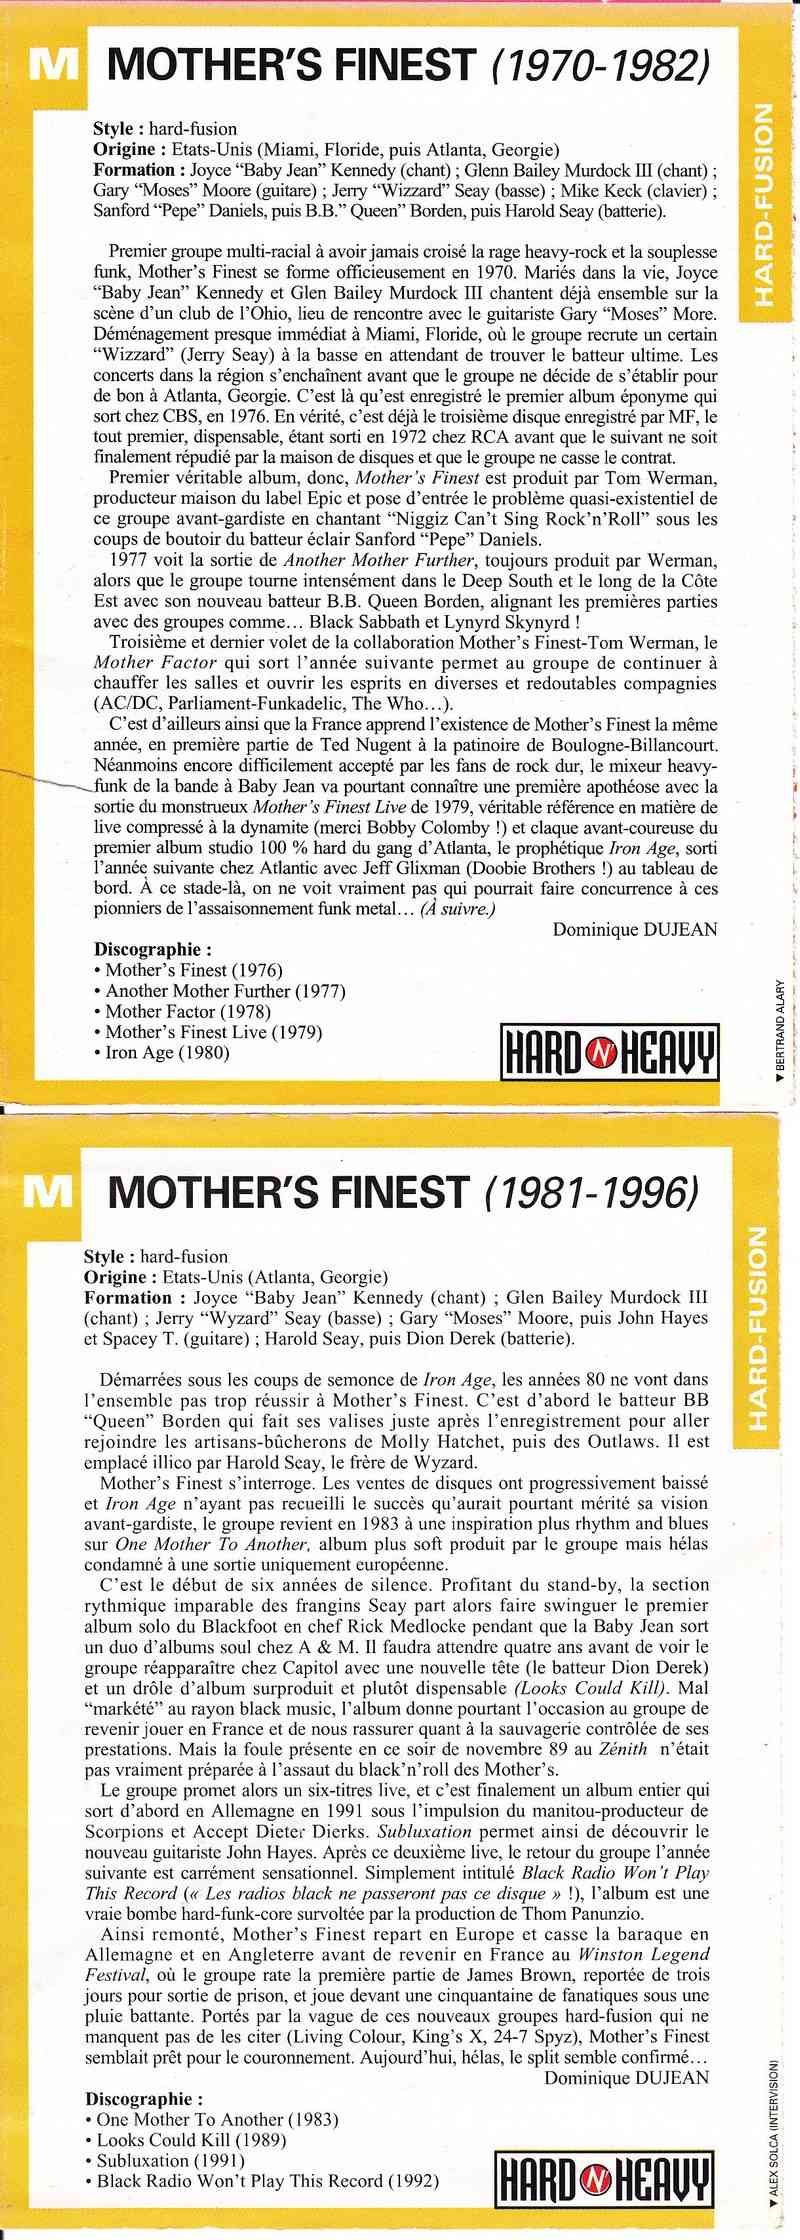 Mother's Finest Texte110